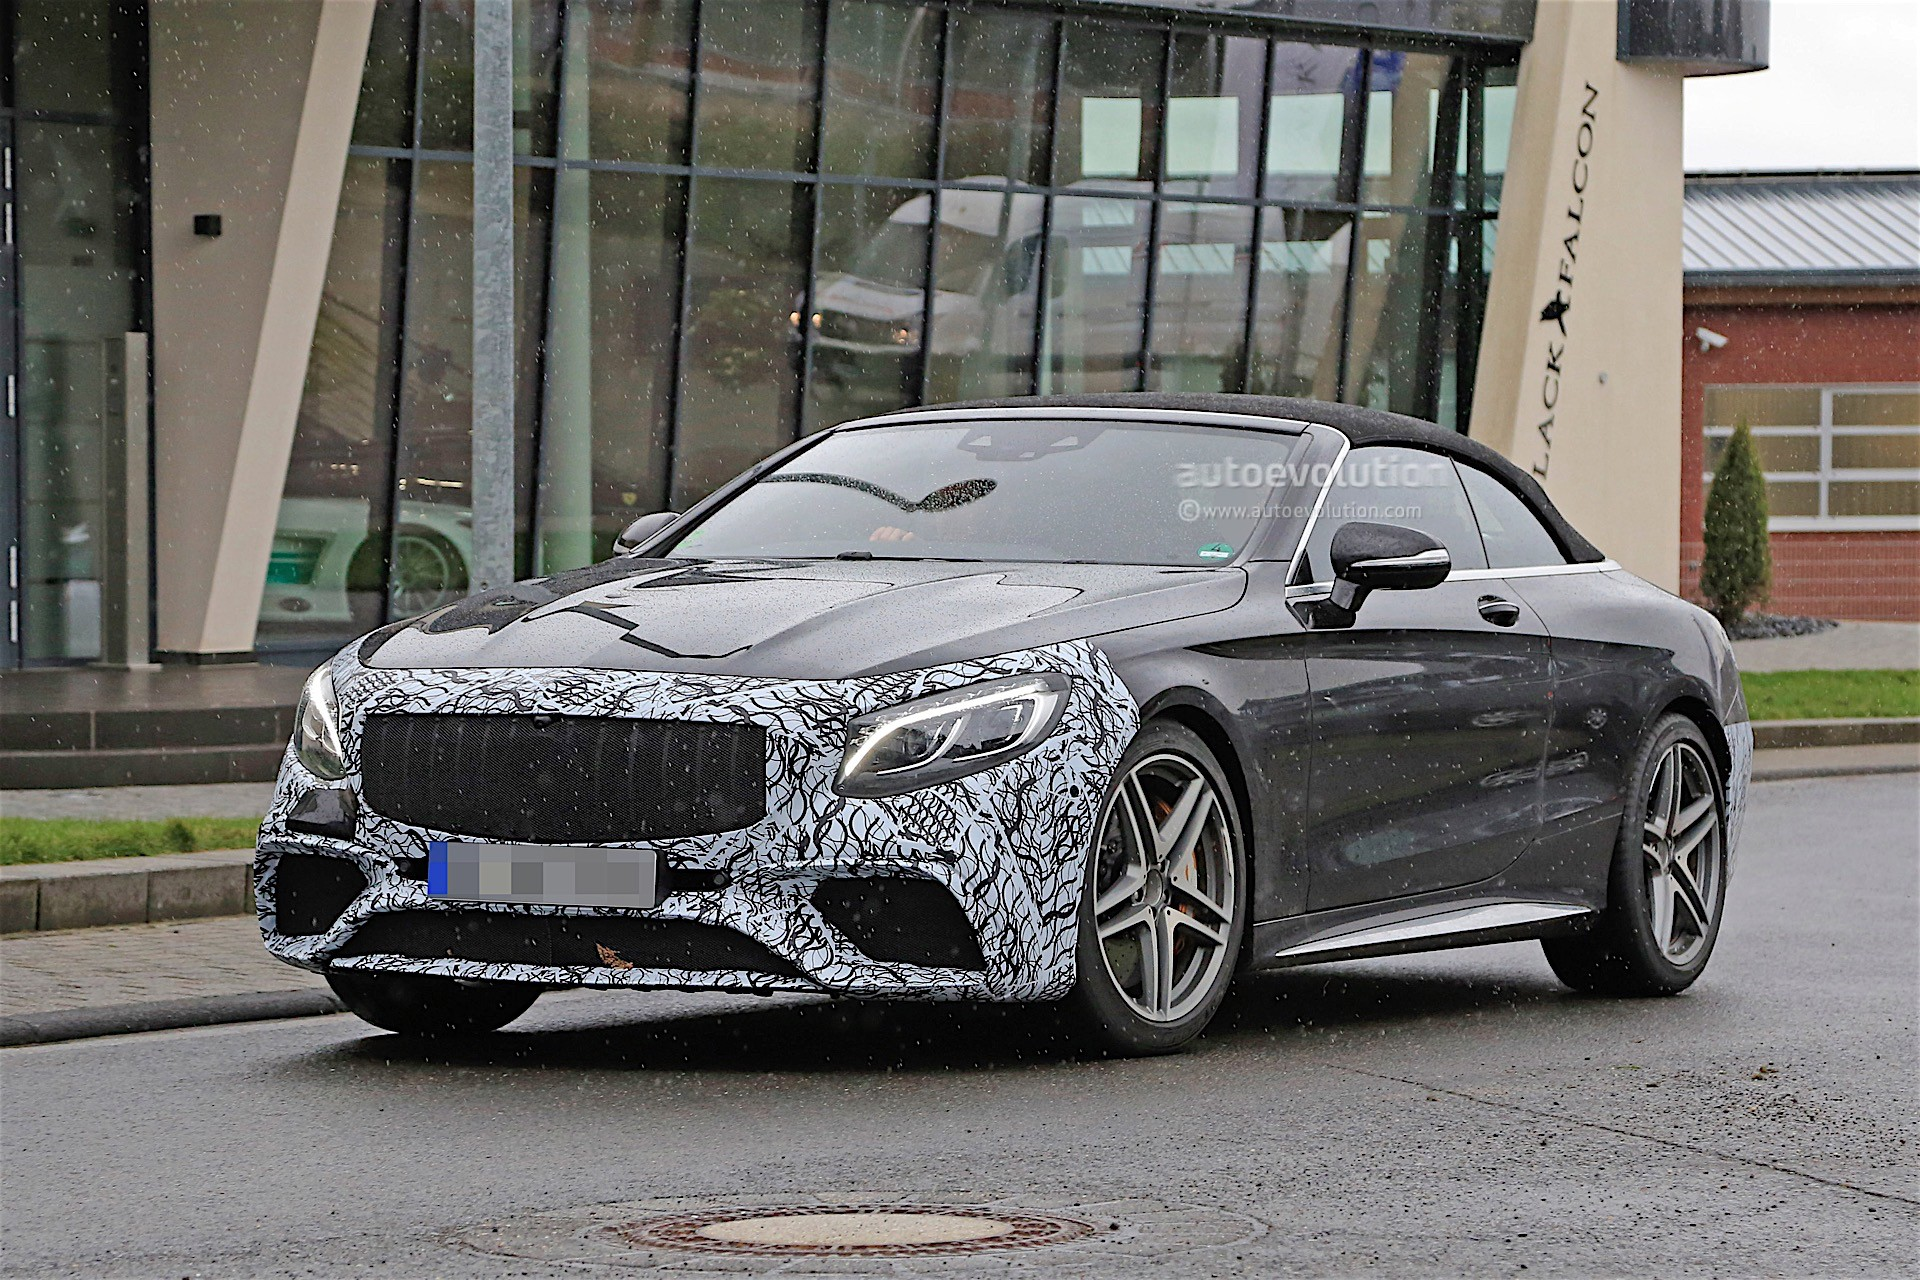 top 3 expectations from the 2019 mercedes-amg s63 cabriolet